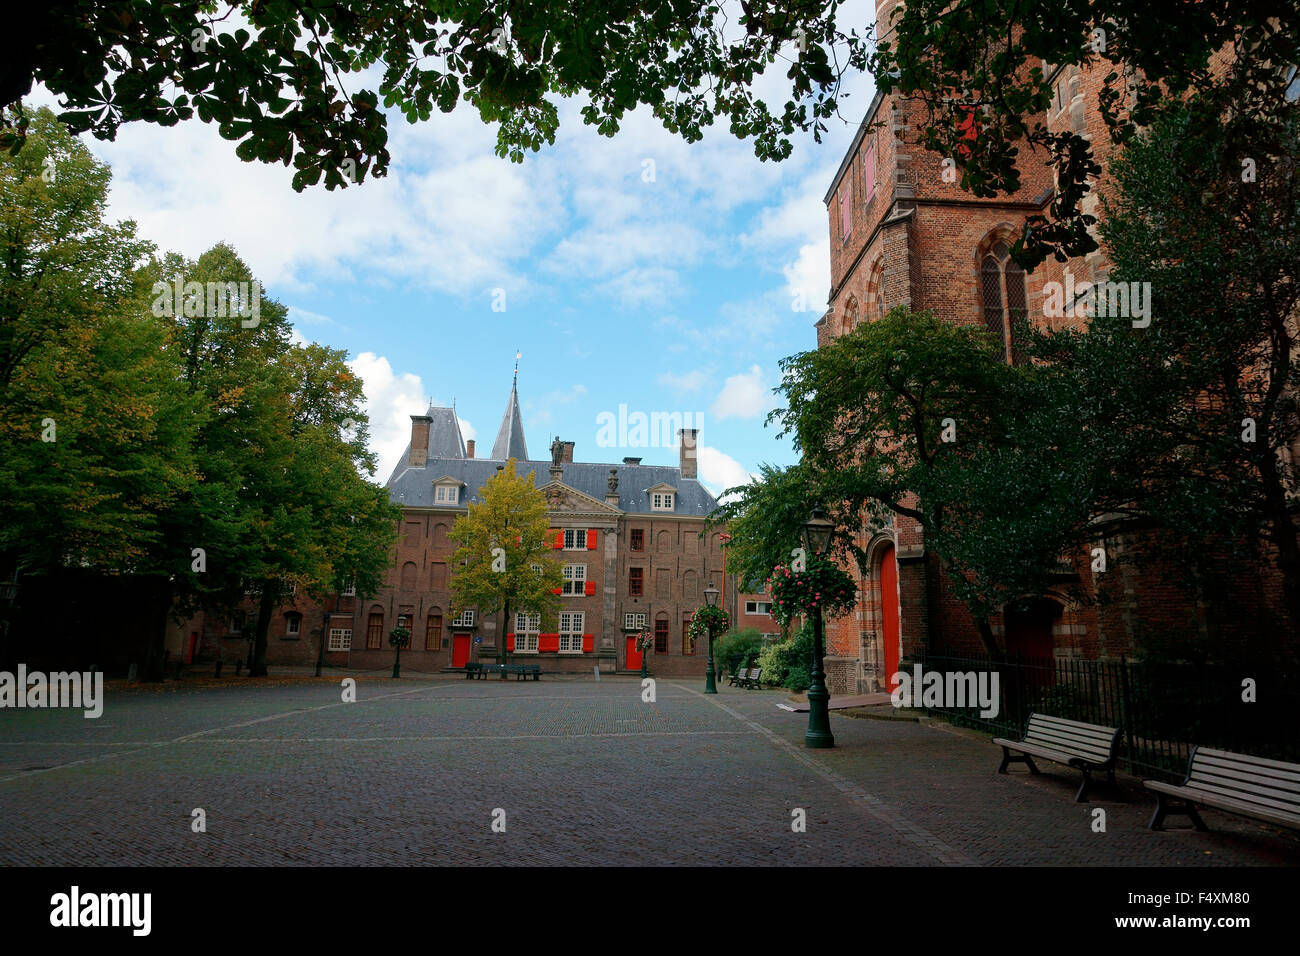 PIETERSKERKOF BEAUTIFUL VILLAGE. - Stock Image